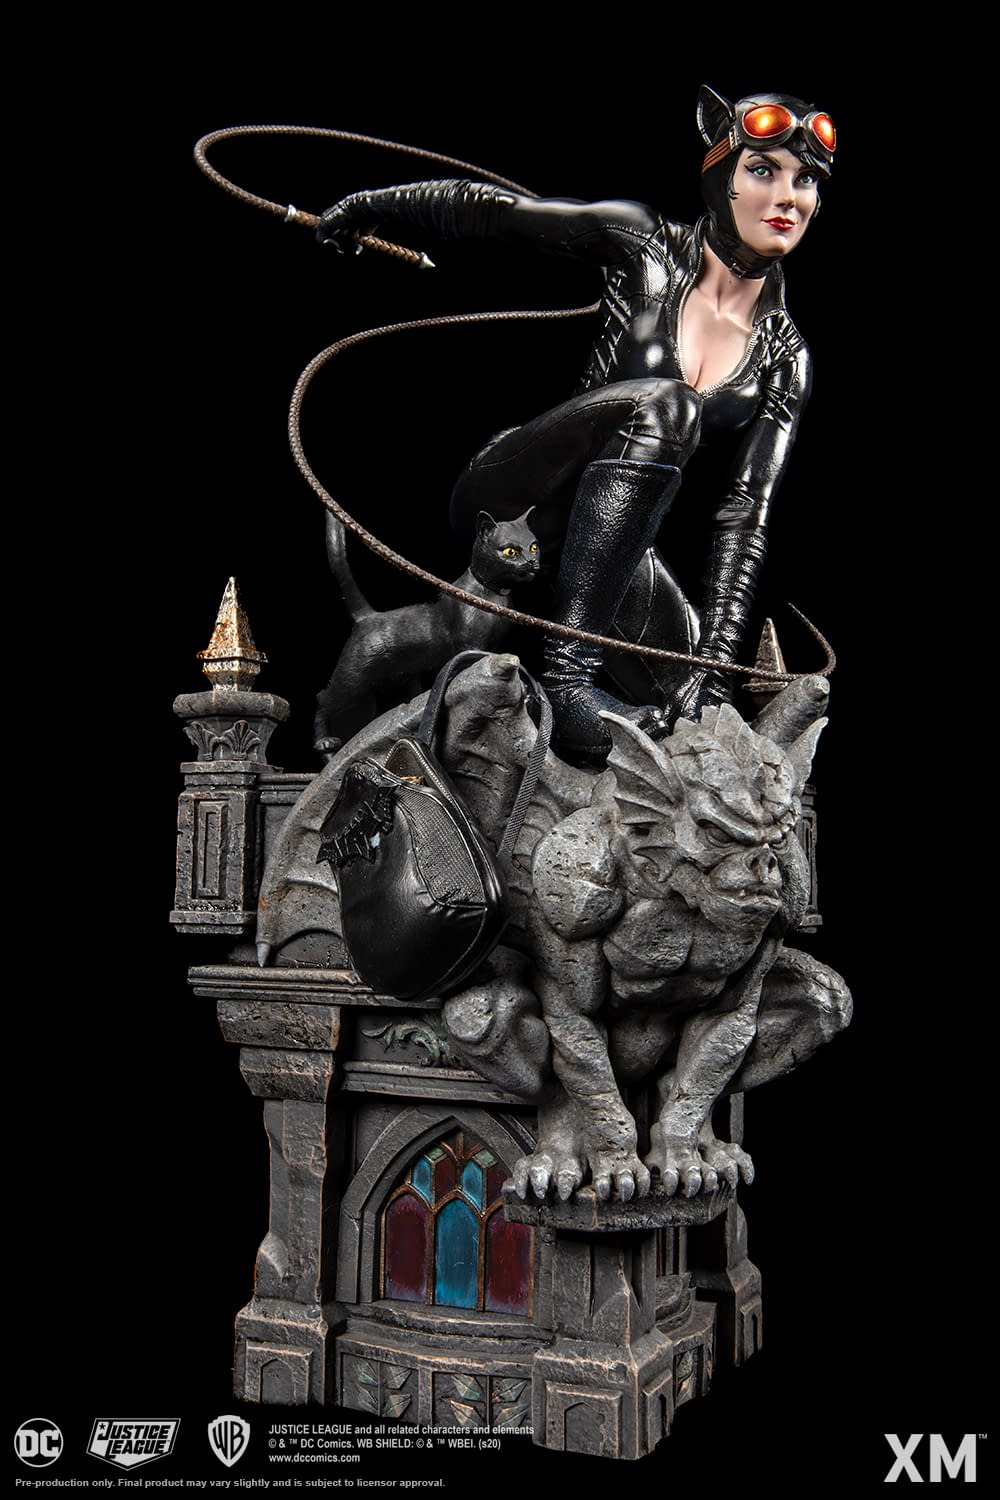 DC Premium Collectibles DC Rebirth Series Catwoman Statue from XM Studios